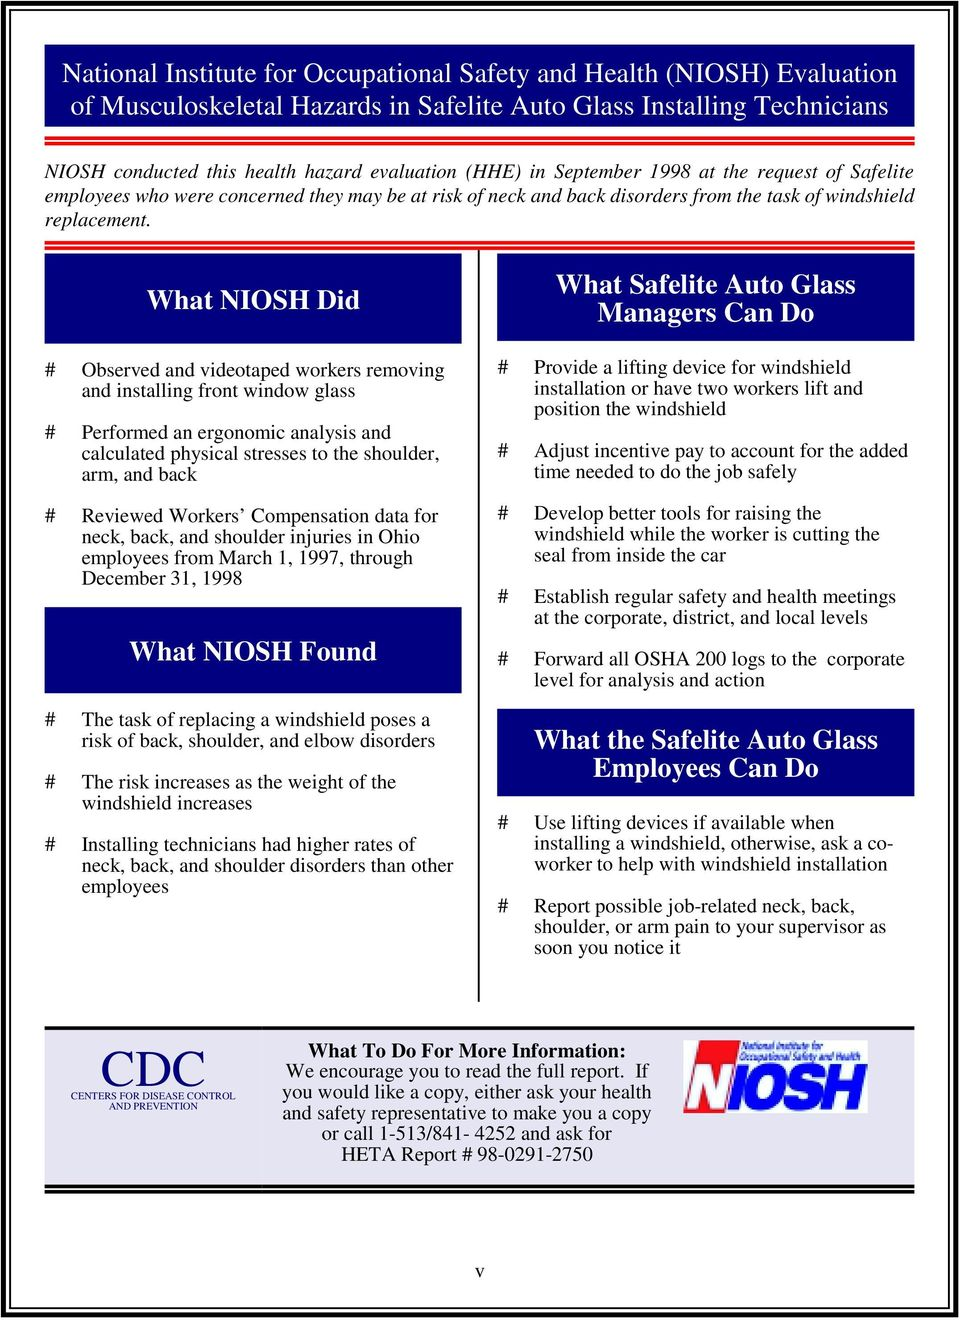 What NIOSH Did # Observed and videotaped workers removing and installing front window glass # Performed an ergonomic analysis and calculated physical stresses to the shoulder, arm, and back #